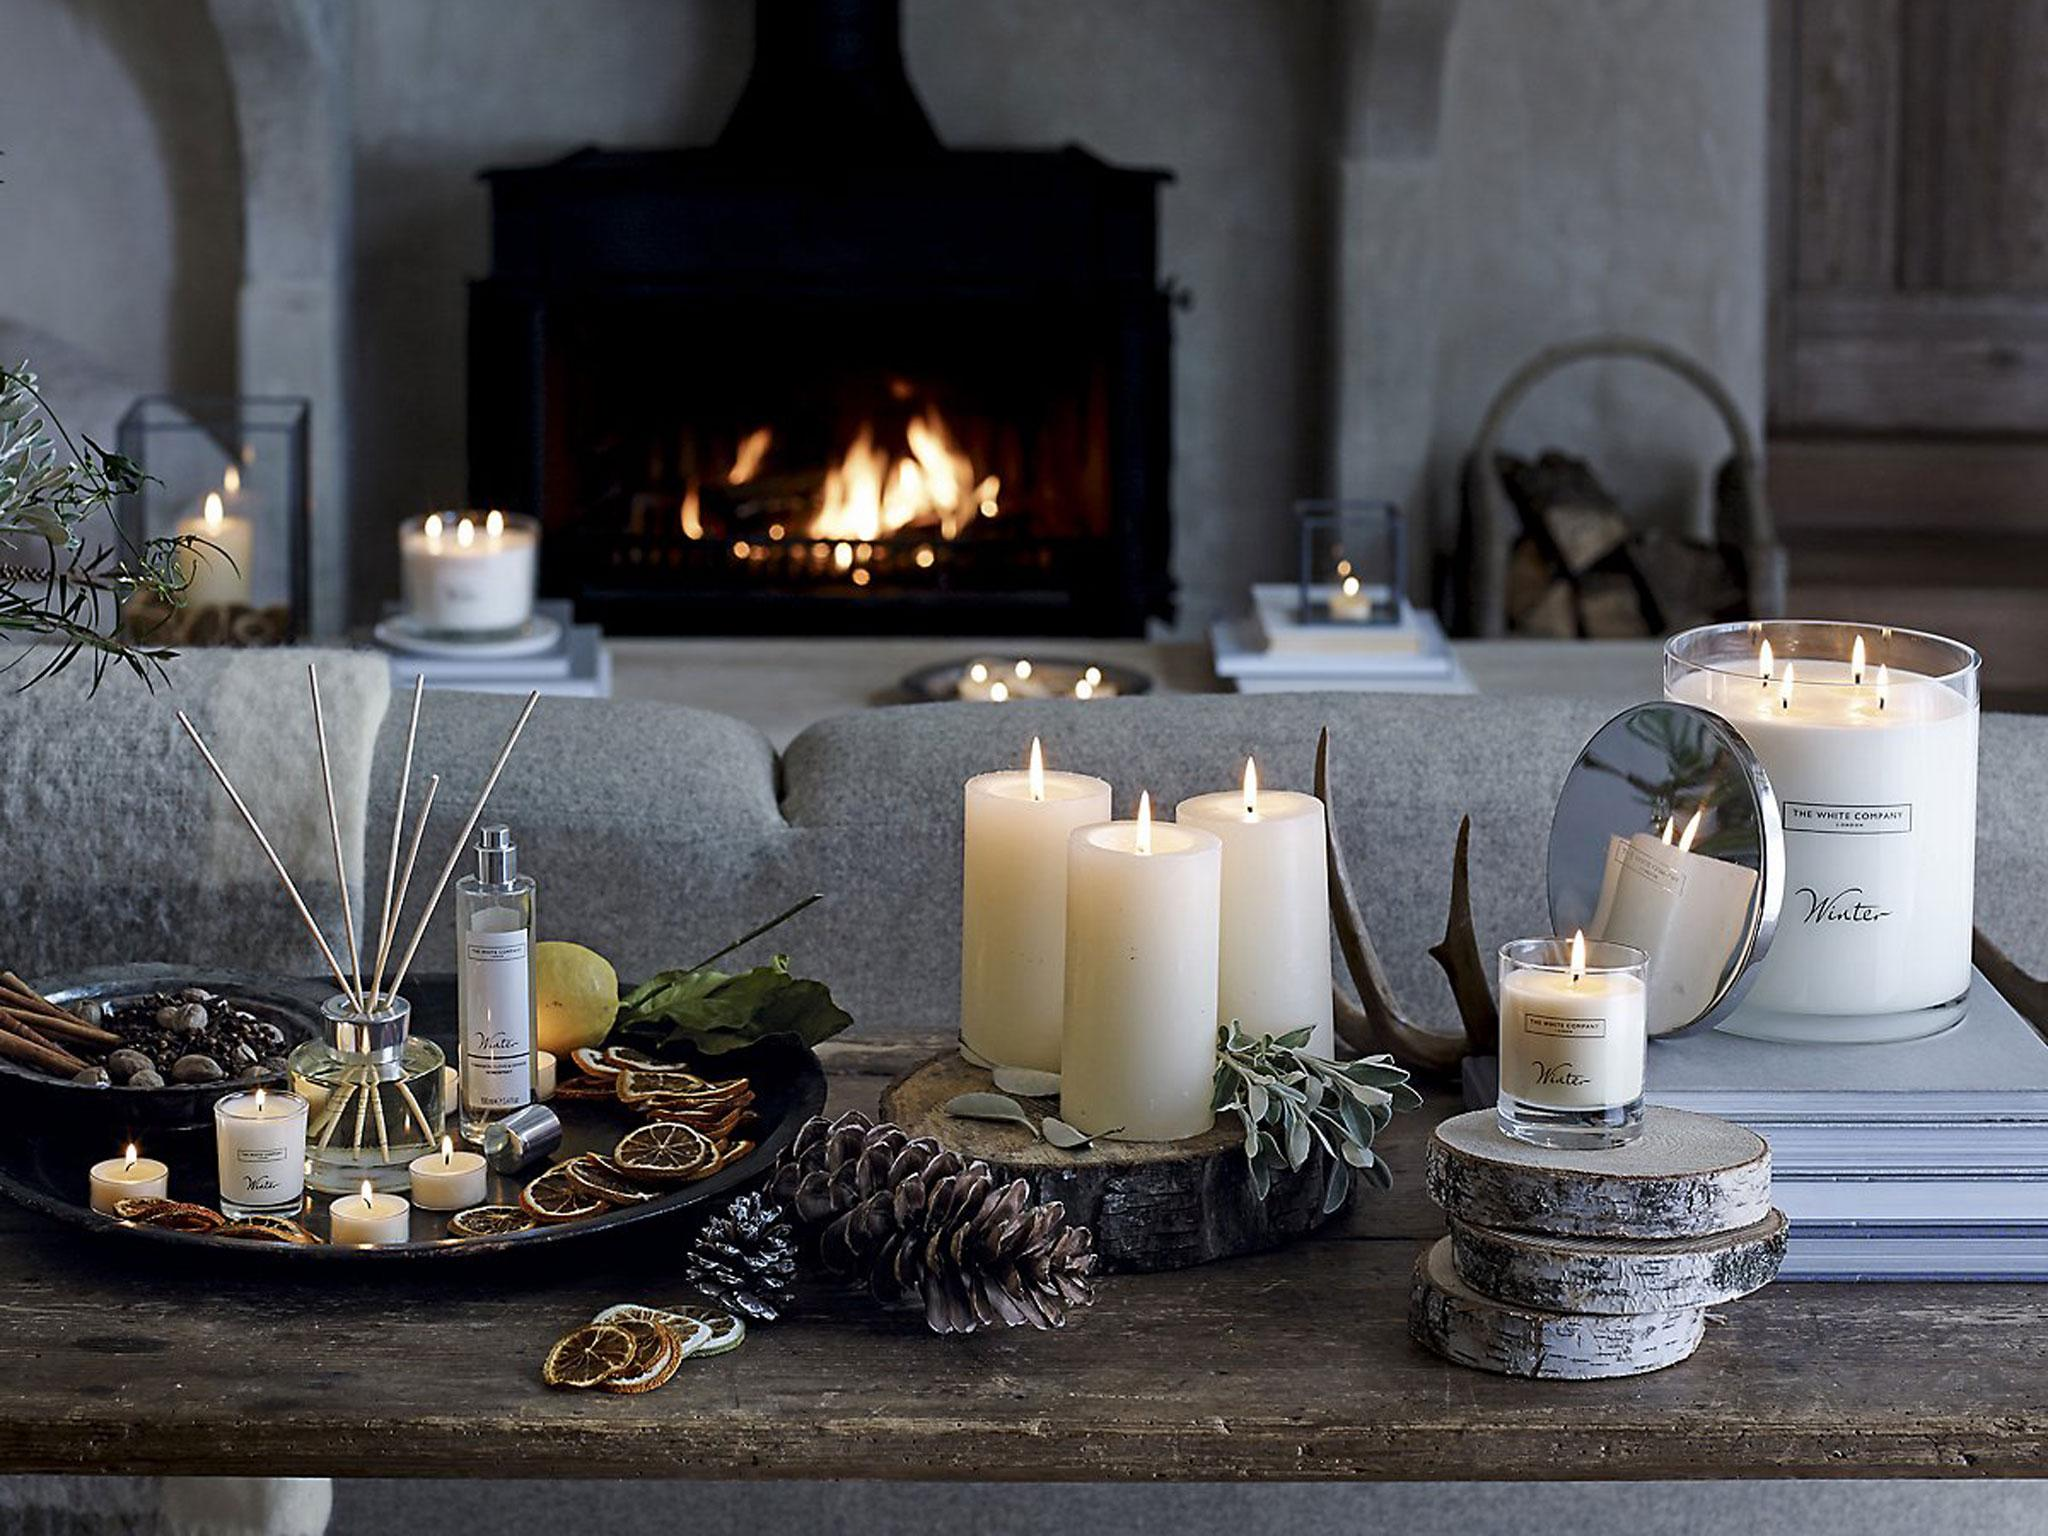 15 Best Christmas Scented Candles